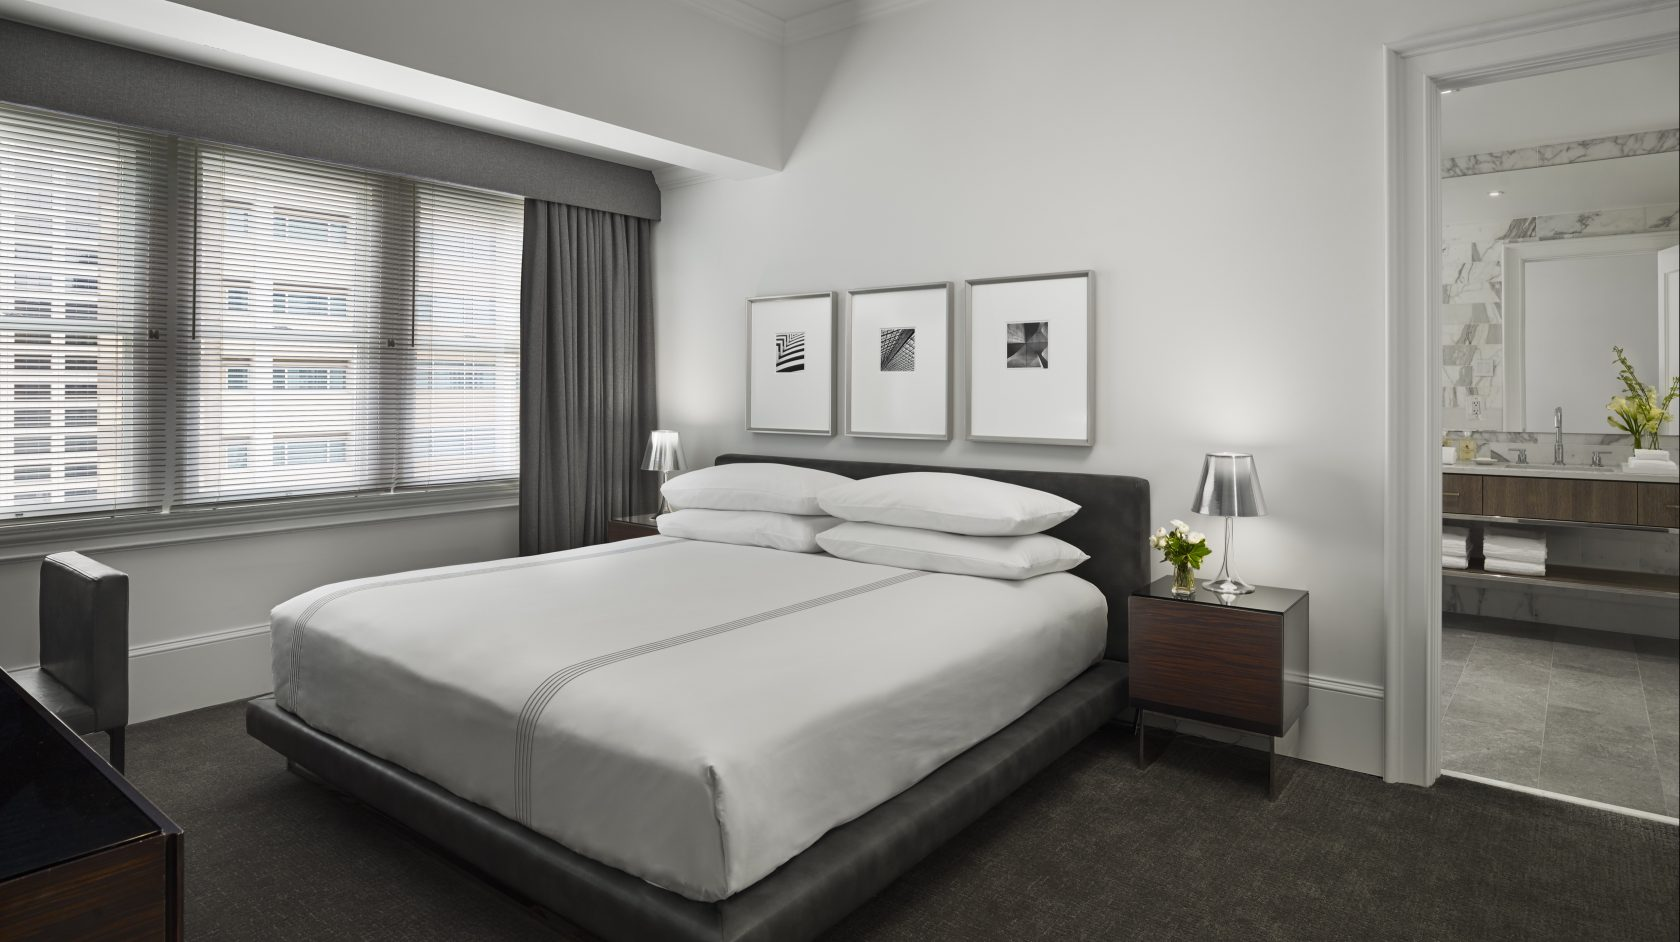 2 bedroom suites in philadelphia. reserve your stay now to enjoy overnight accommodations and convenient parking 2 bedroom suites in philadelphia l